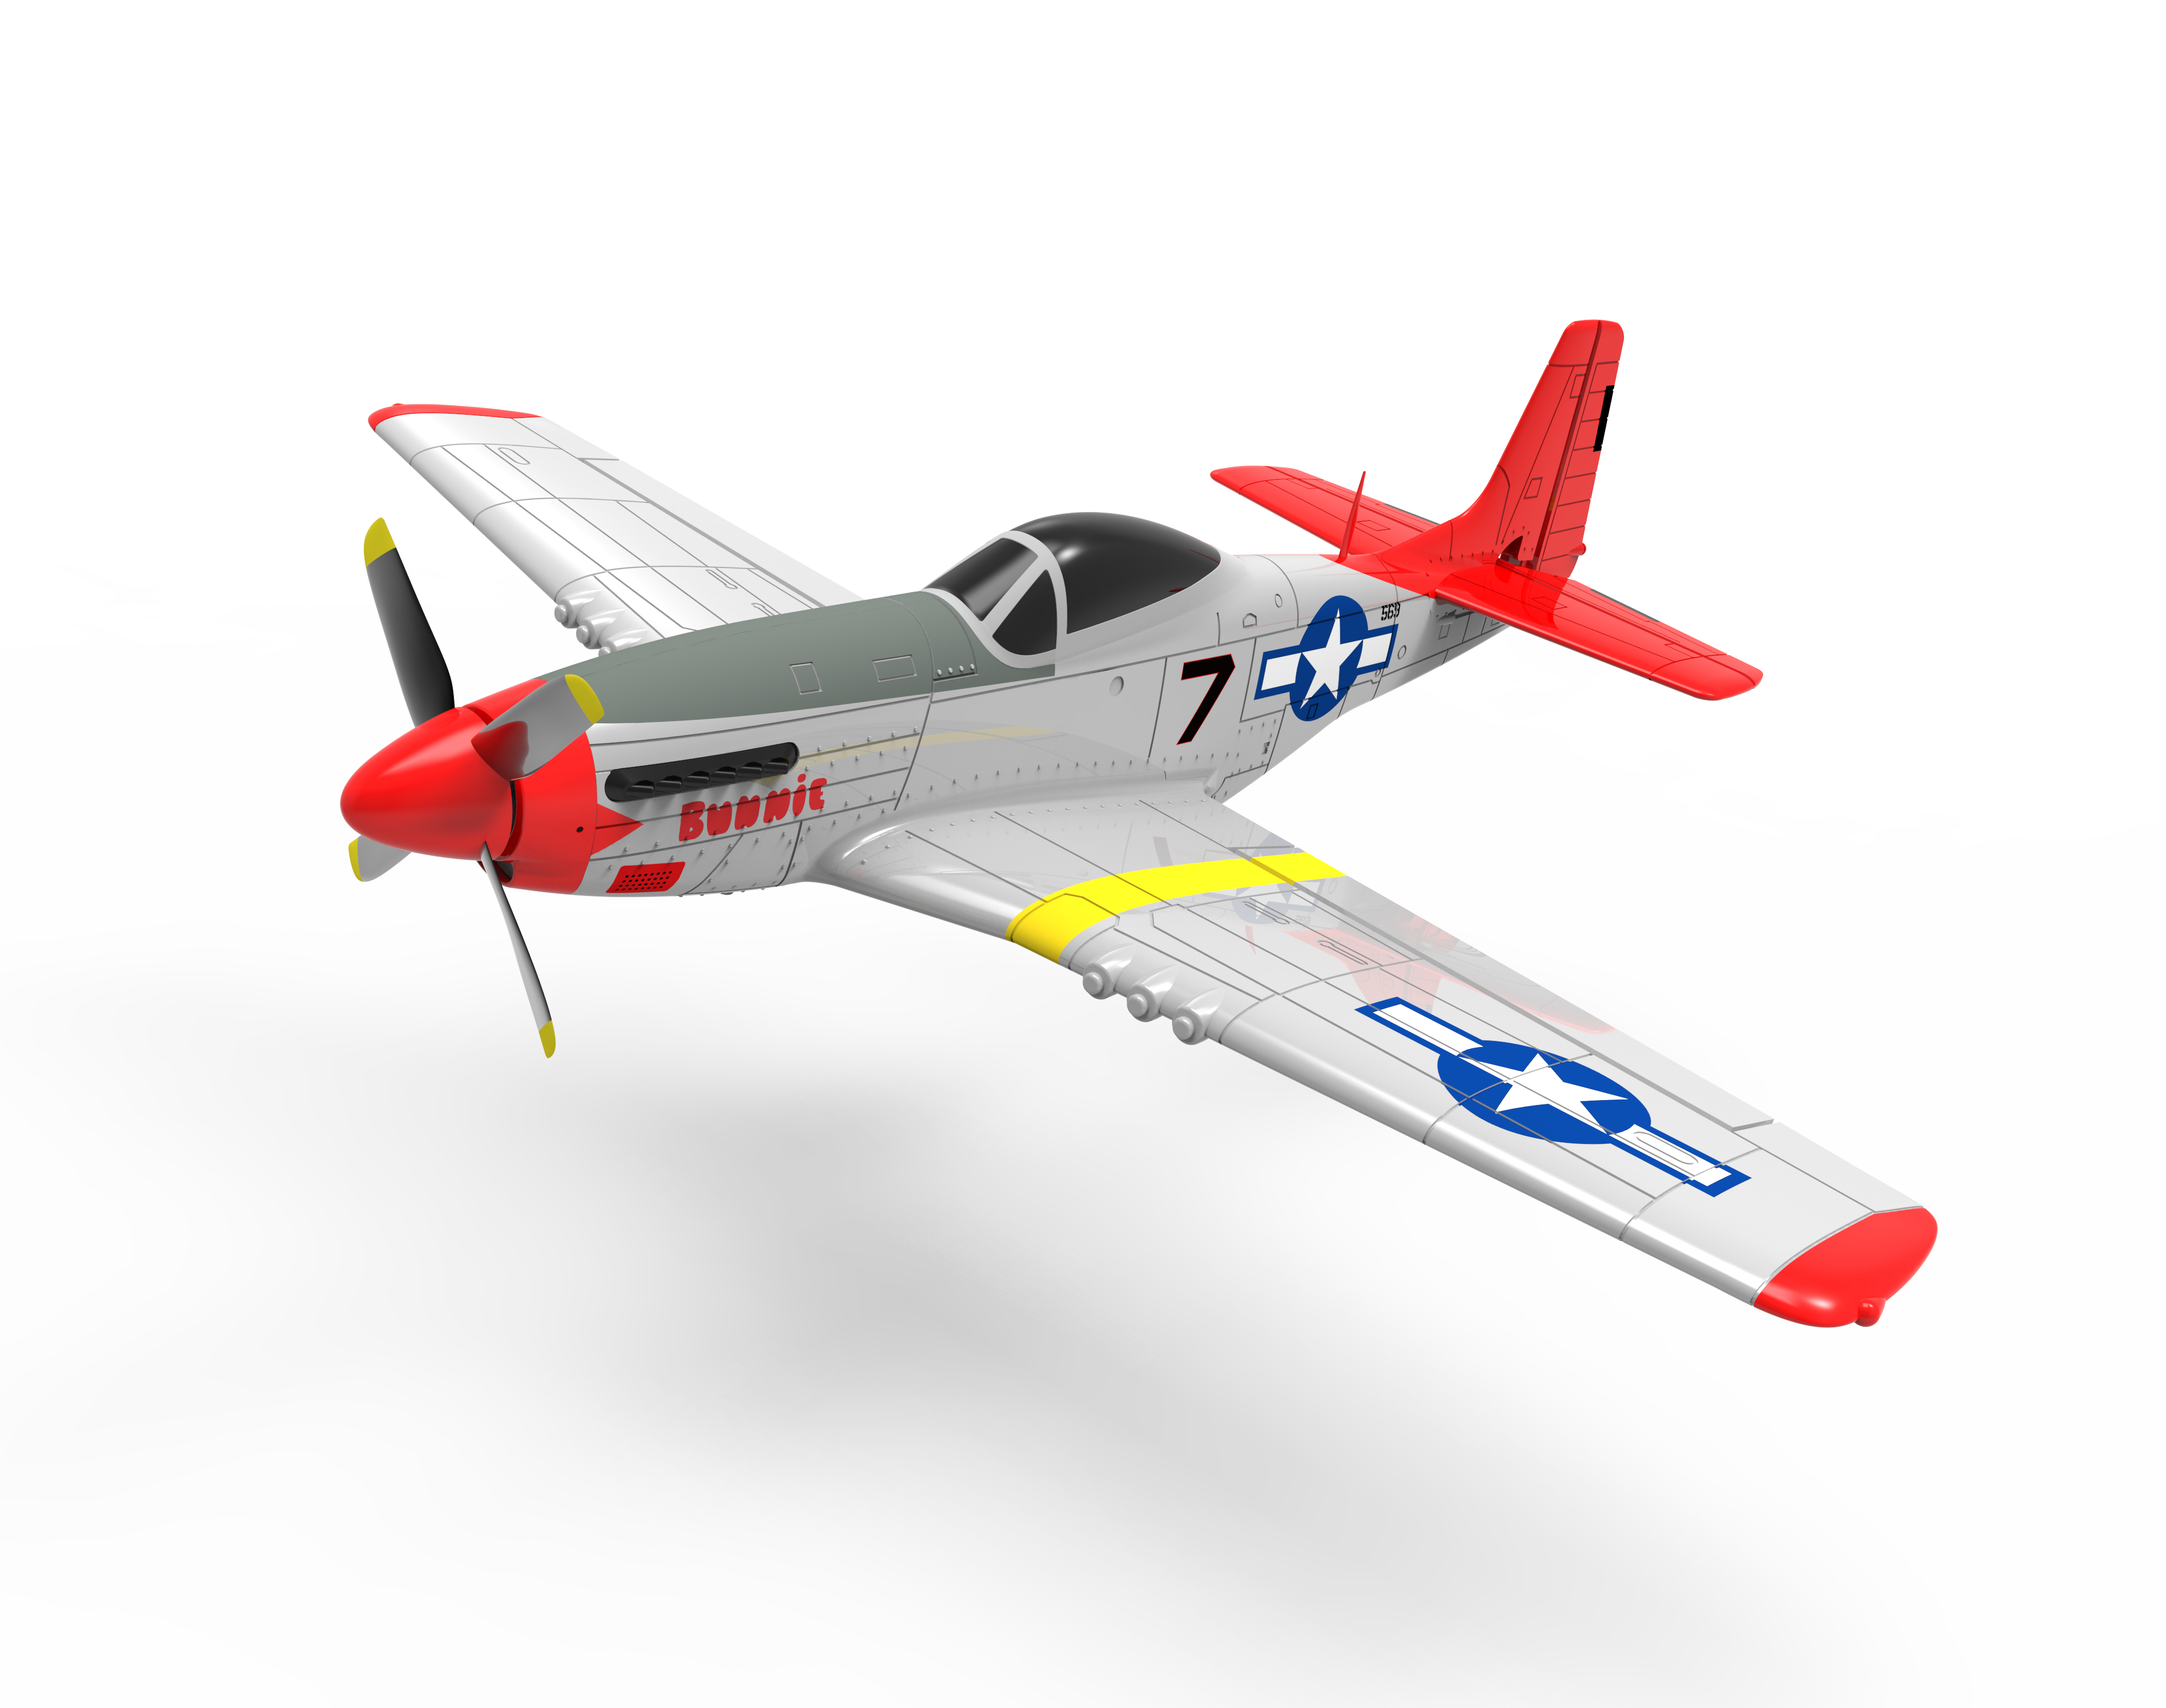 Volantex 768-1 PNP 4-CH Brushless wingspan 750MM rc airplane model